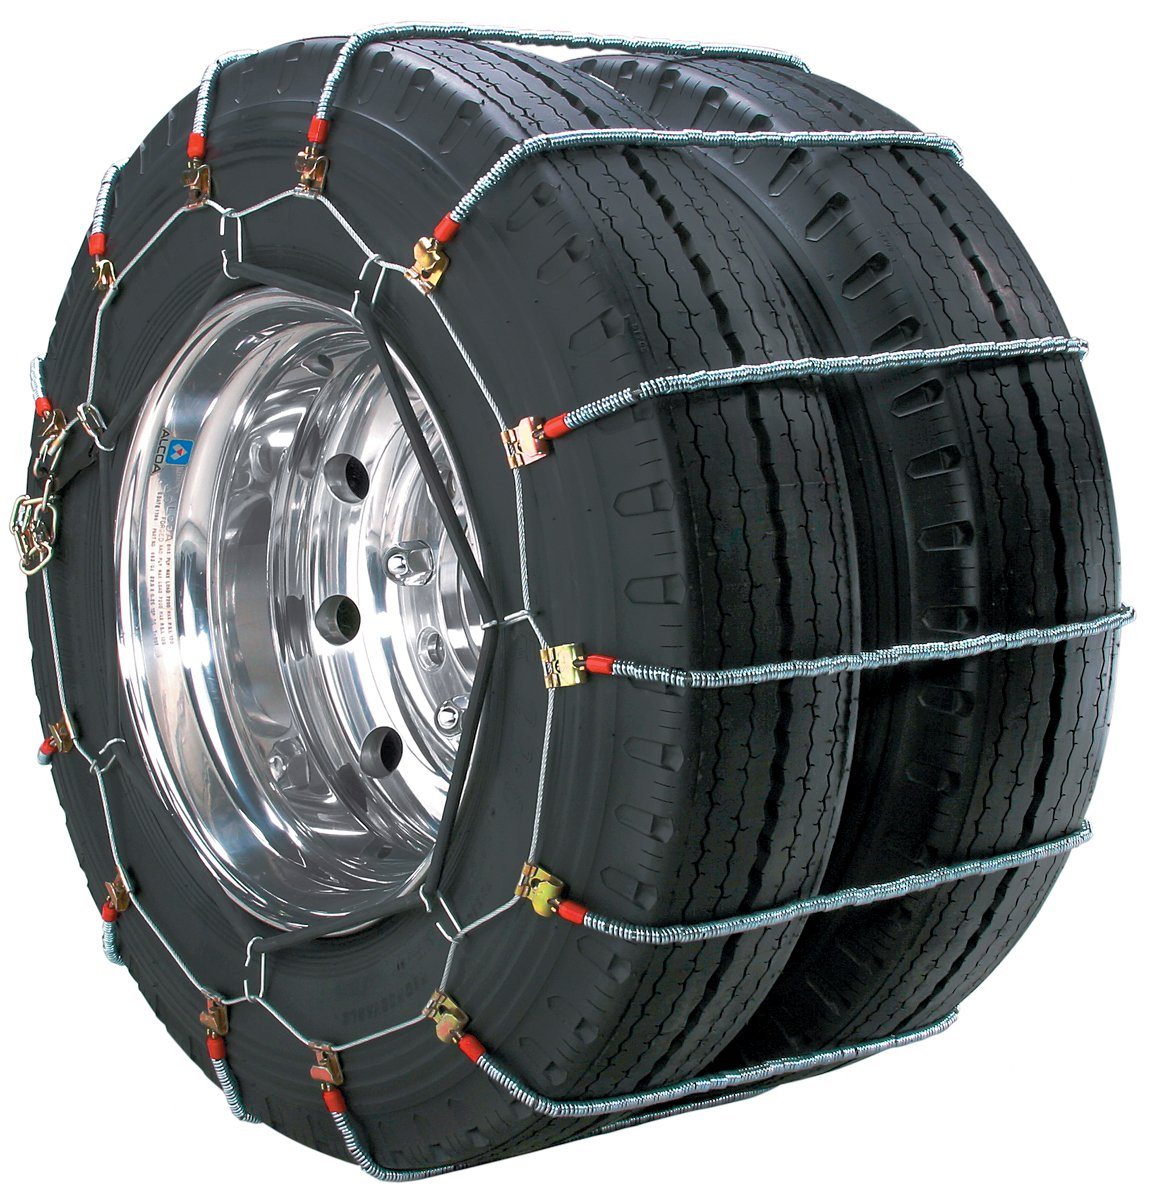 Security Chain Company TA3945 Alloy Radial Heavy Duty Truck Duals Tire Traction Chain - Pack of 1